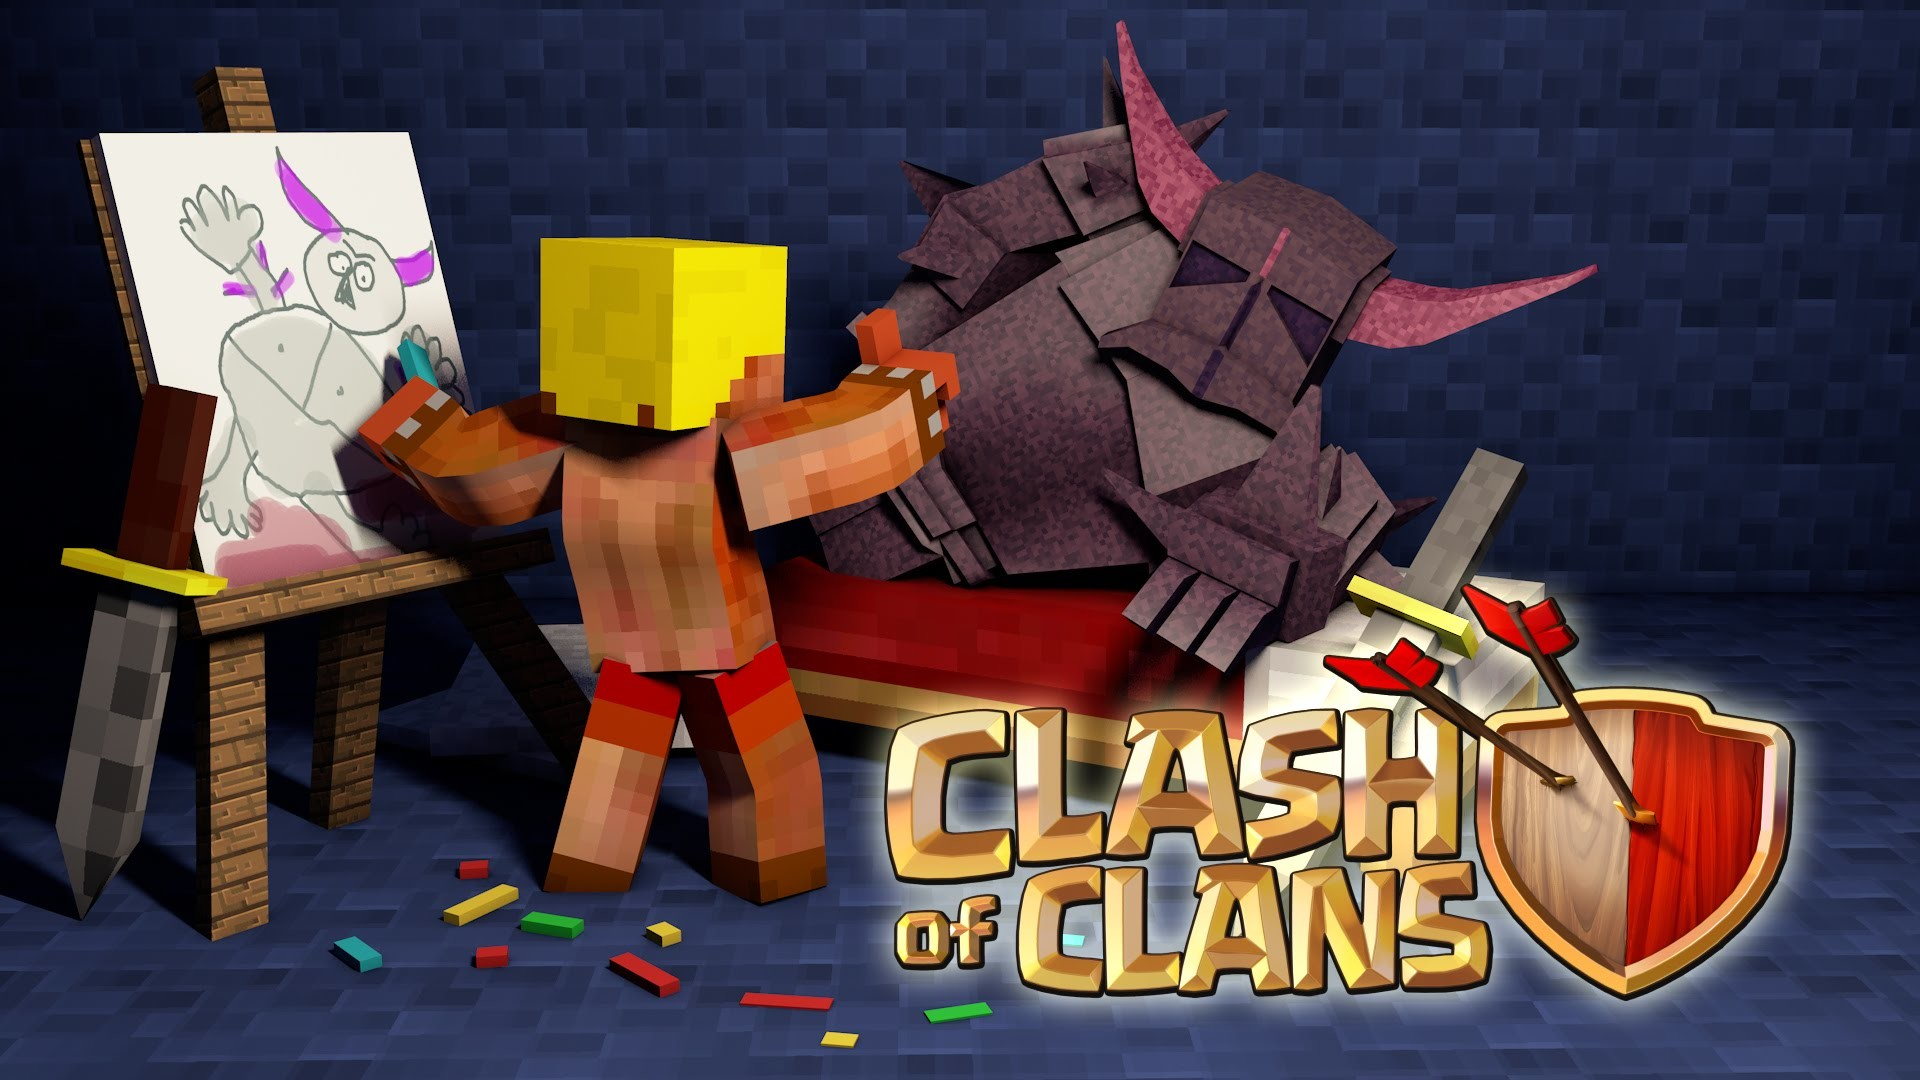 Clash Royale Wallpaper Collection Clash Of Clans Pekka Minecraft